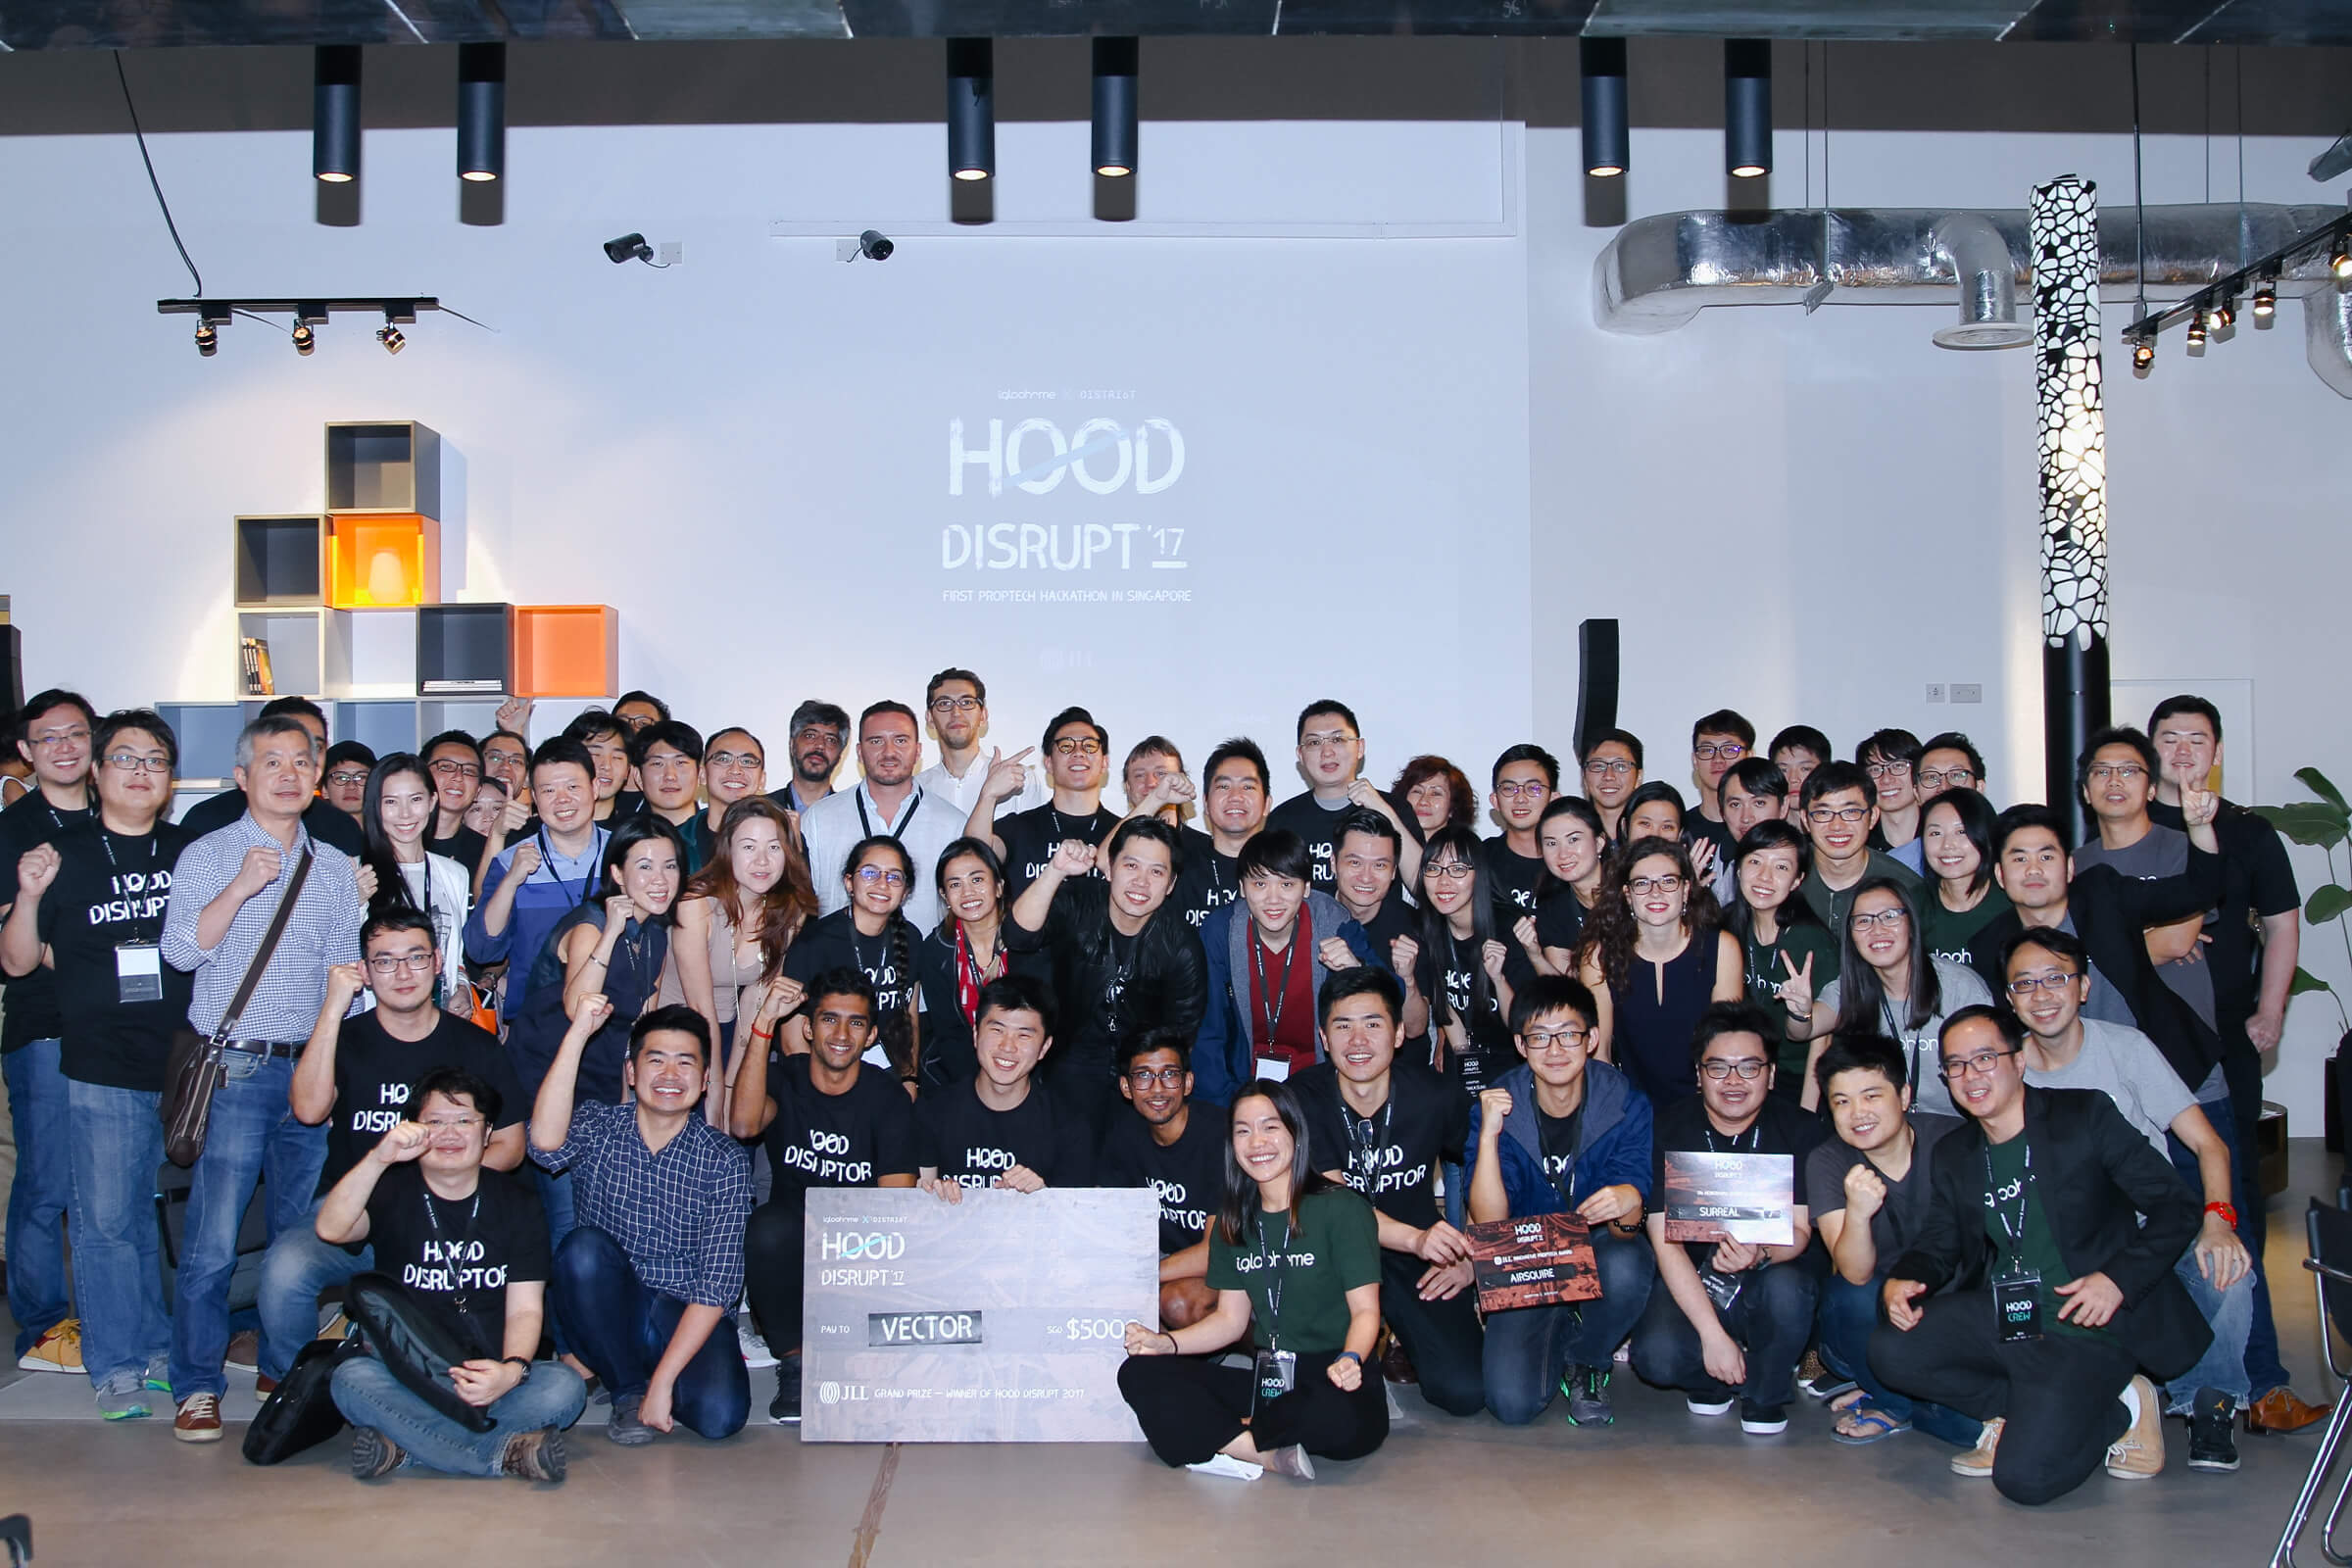 The group photo of participants at Asia's first property tech hackathon, Hood Dispute